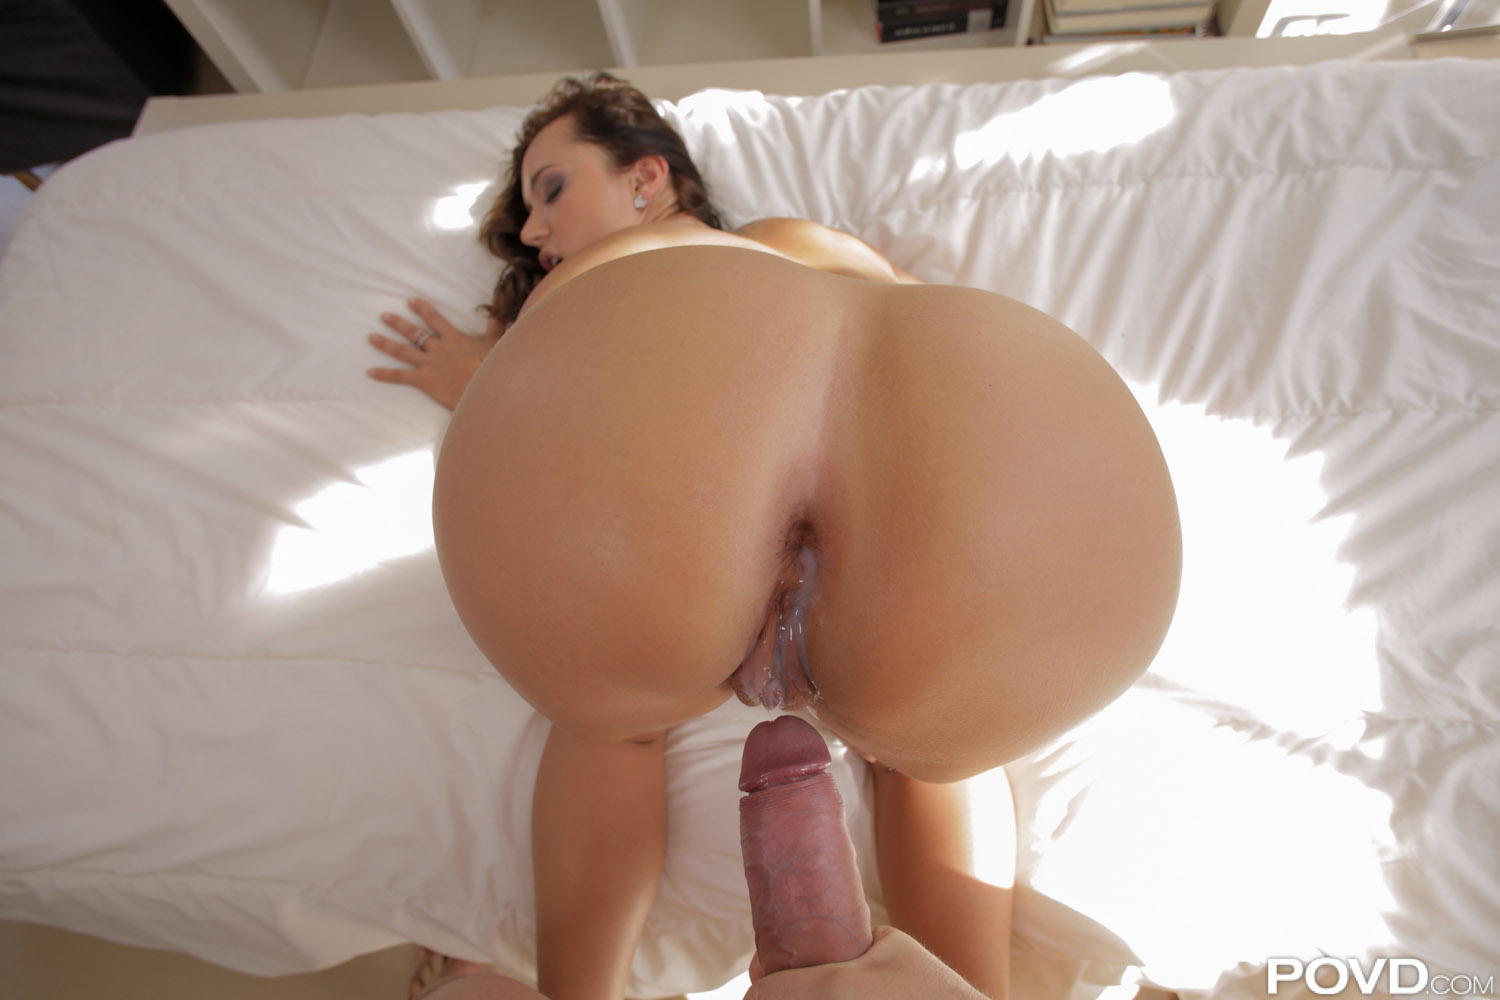 Big Ass Latina Shemale Fuck